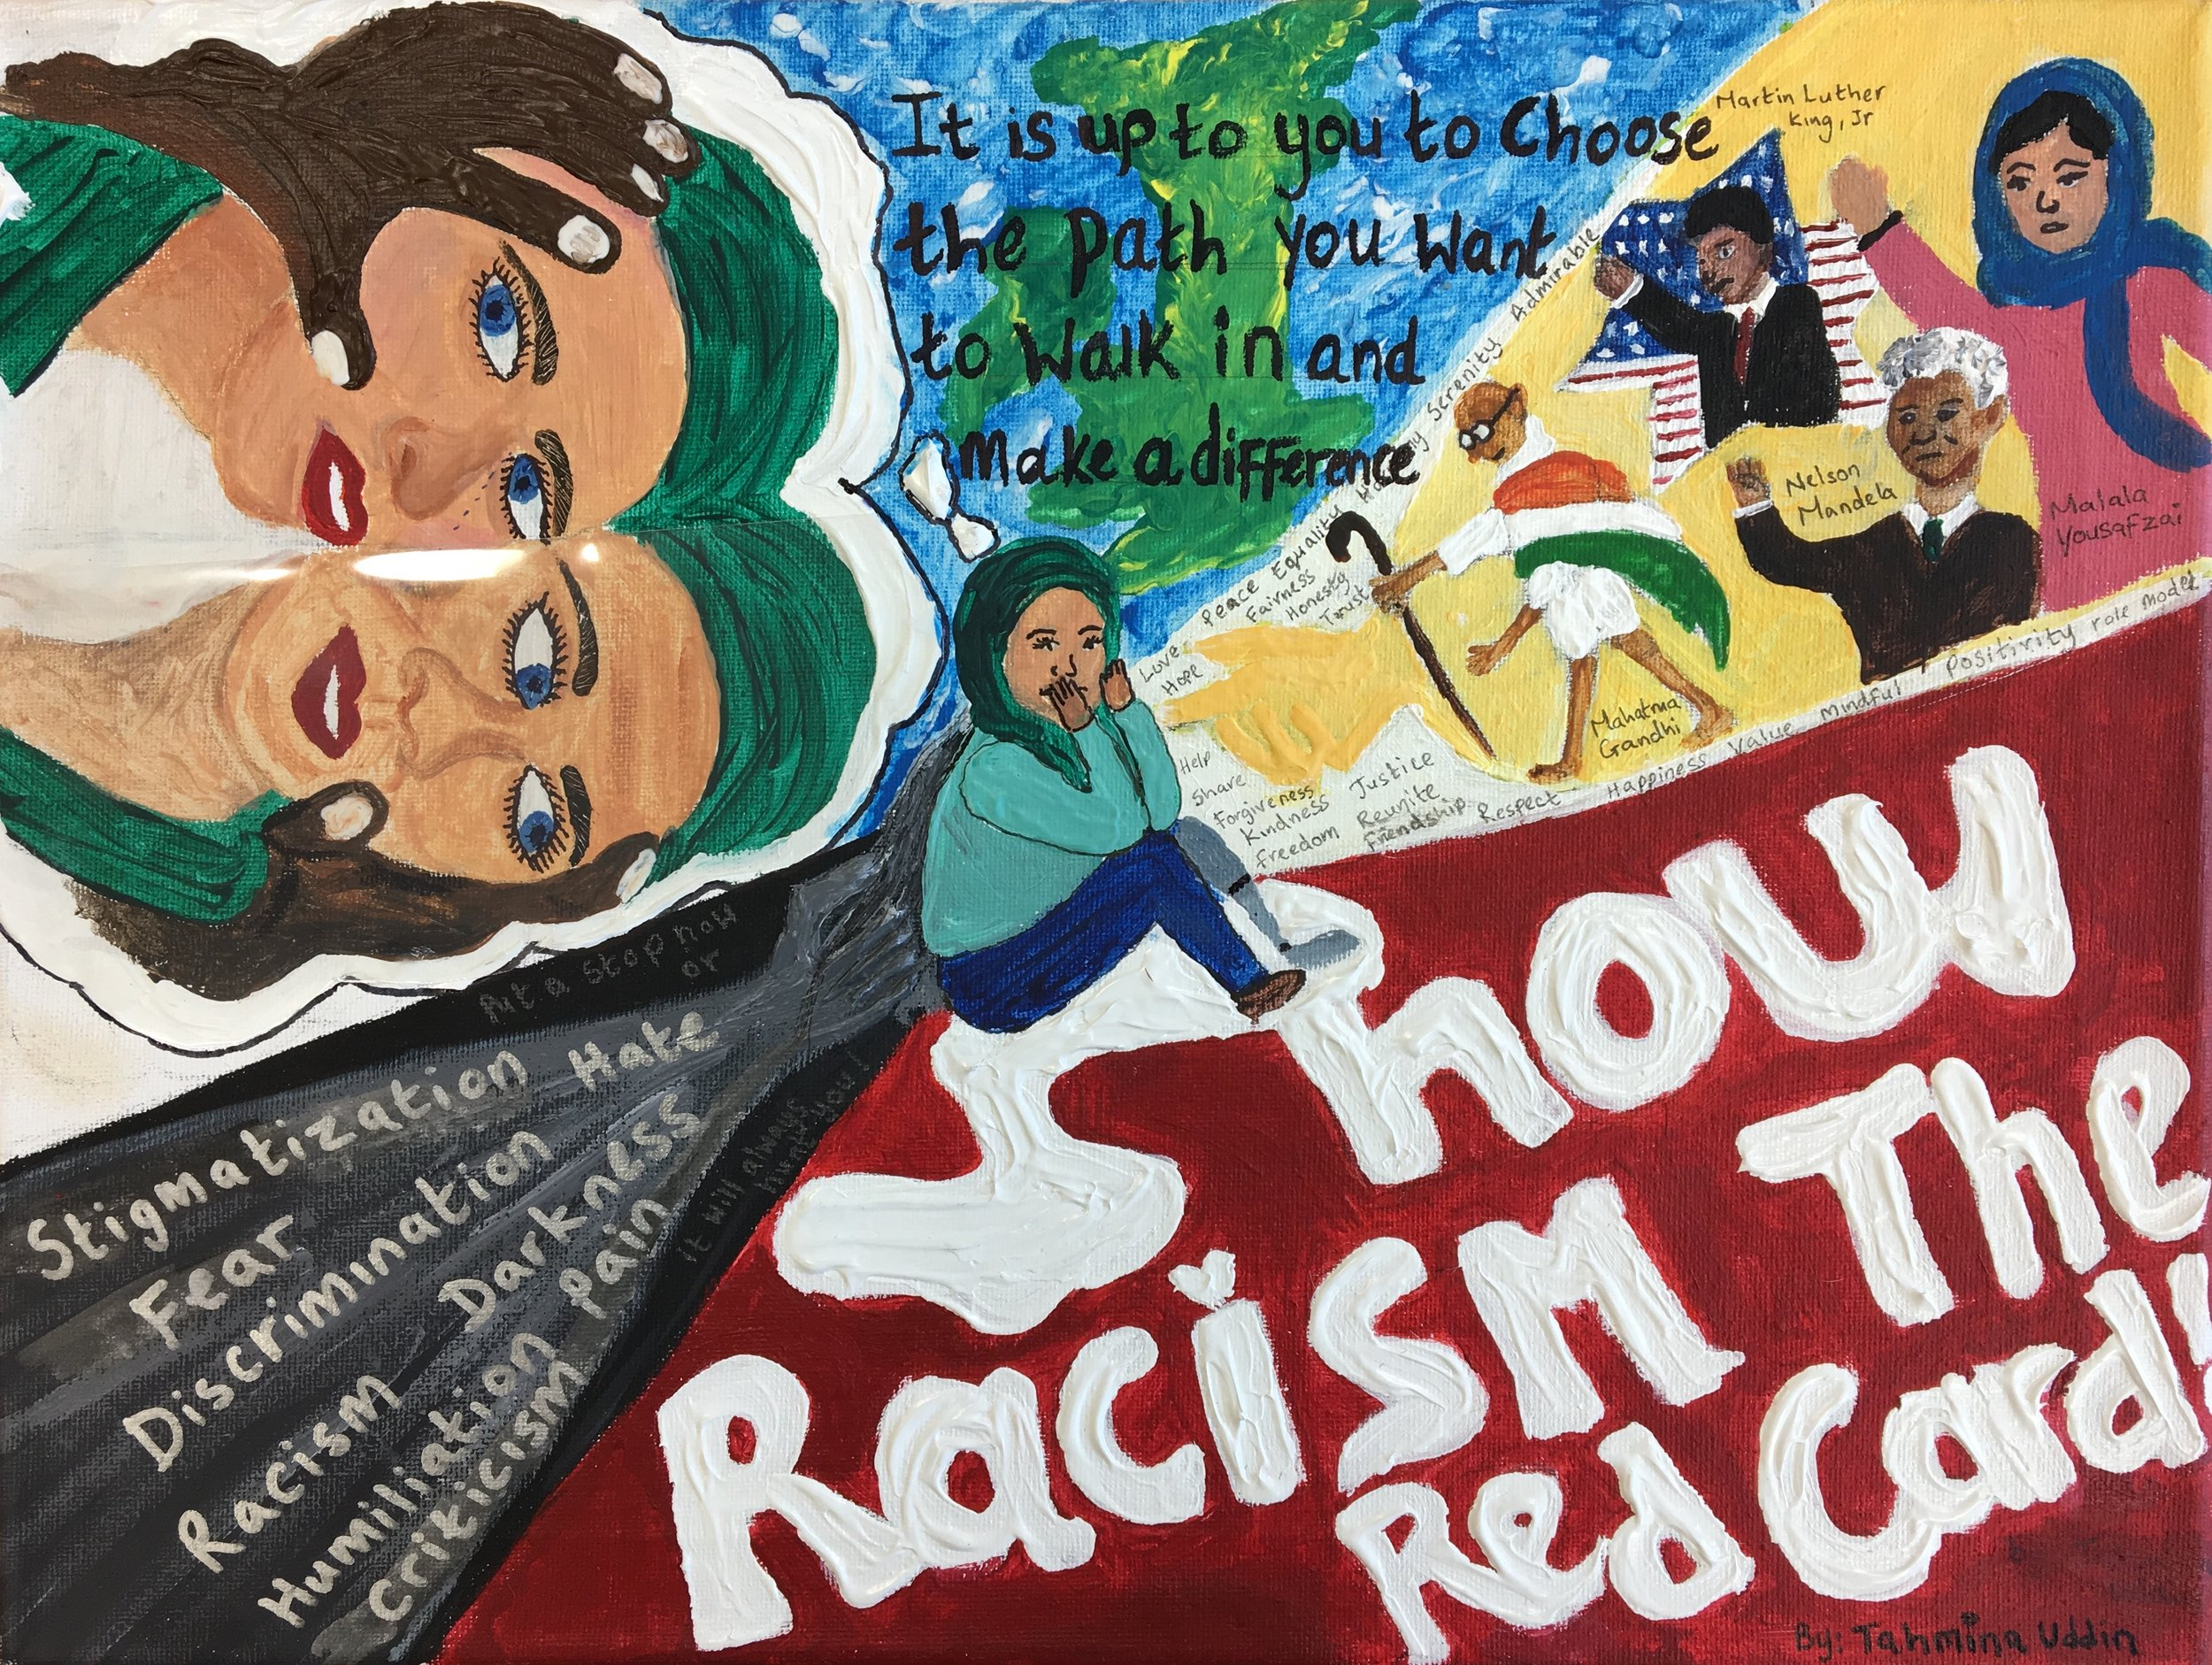 Tahmina Uddin - Olchfa Comprehensive School - Swansea - Poster Design Secondary Education Category